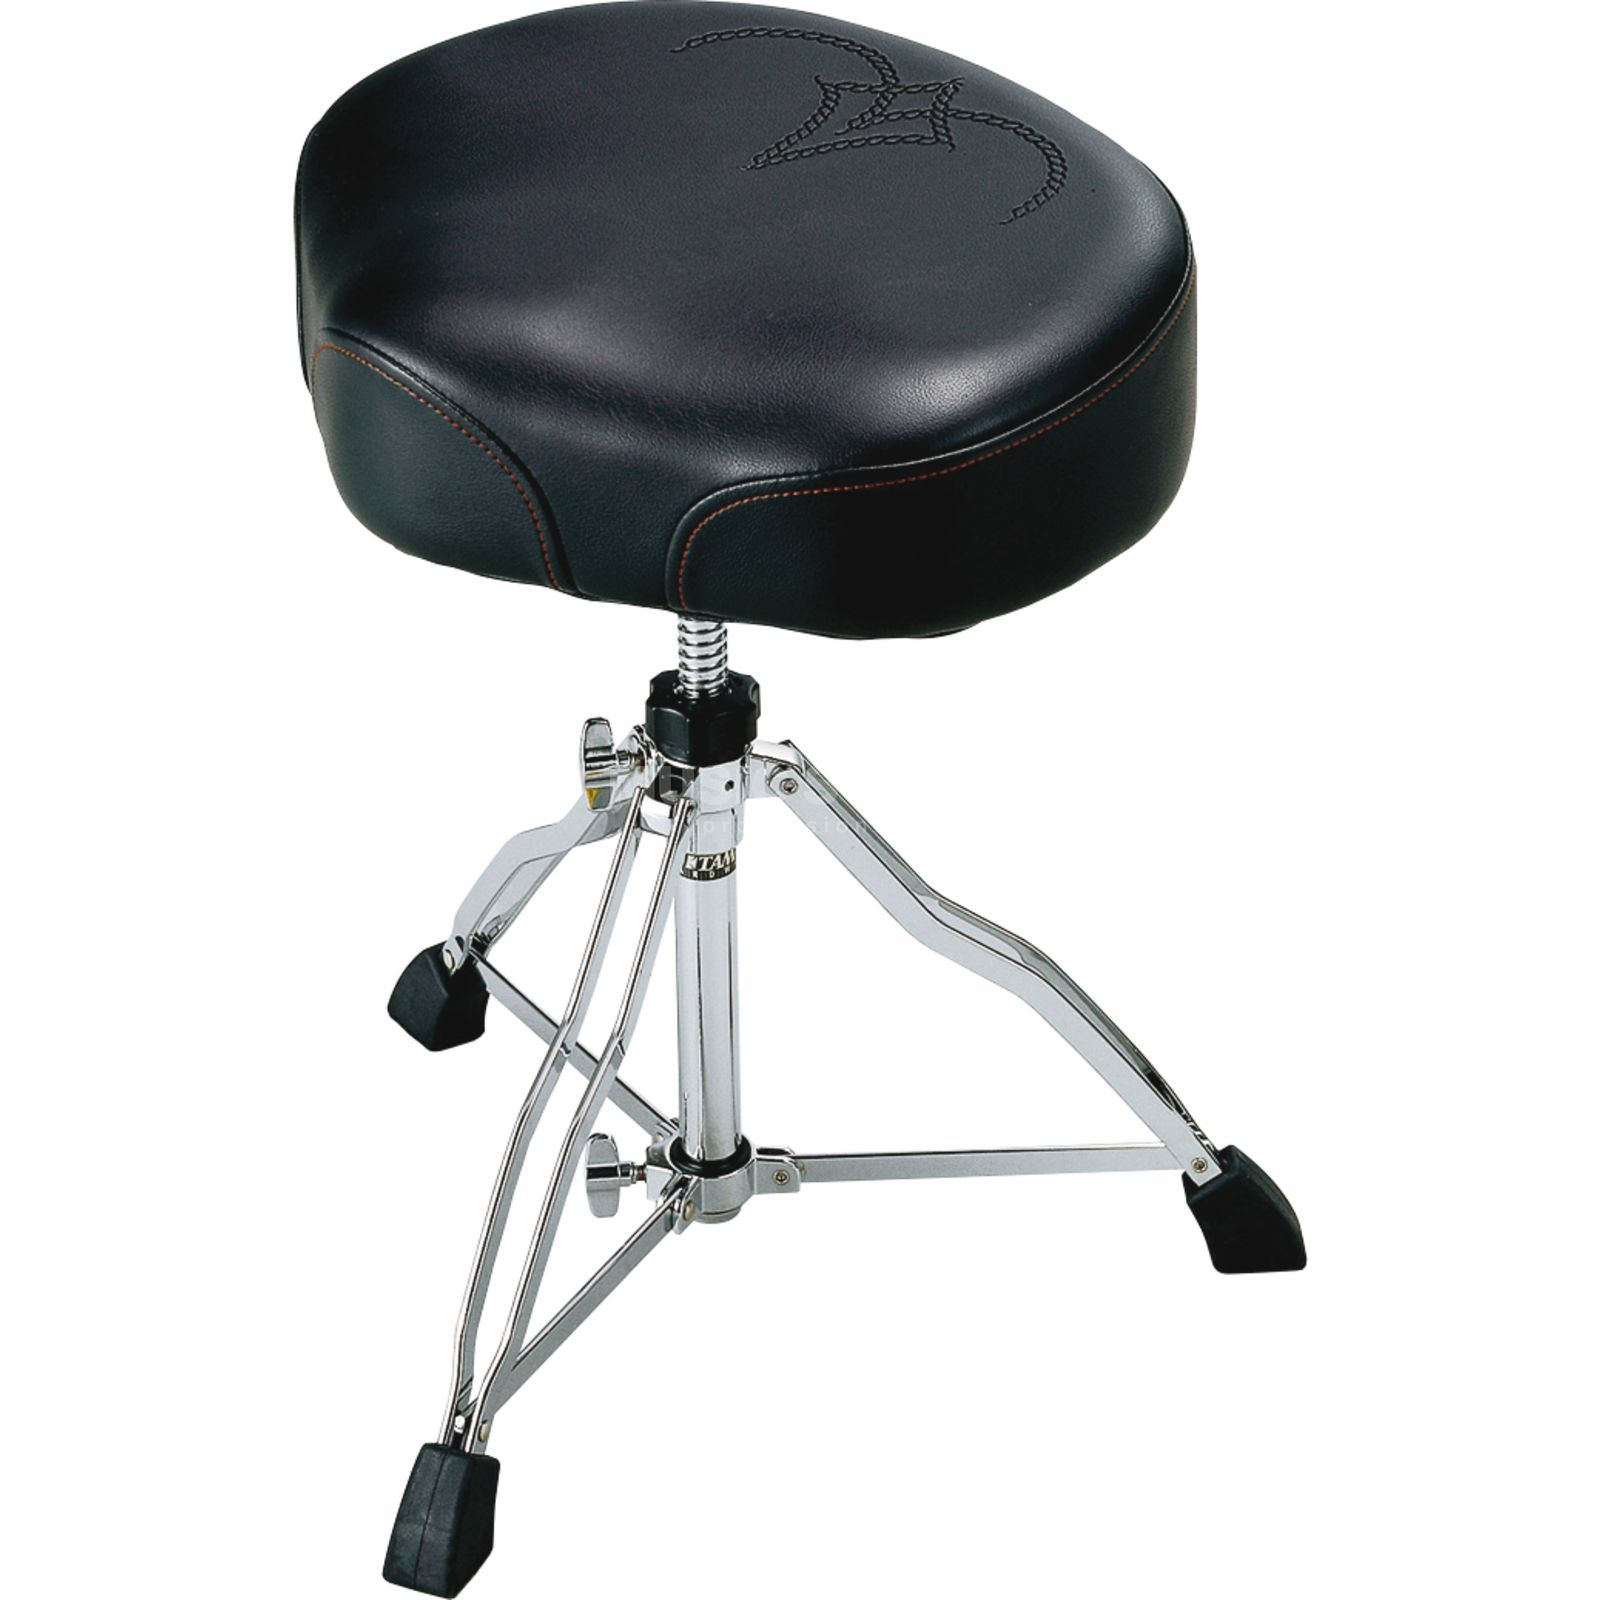 Tama Drum Throne HT730, 1st Chair, Ergo Rider Zdjęcie produktu